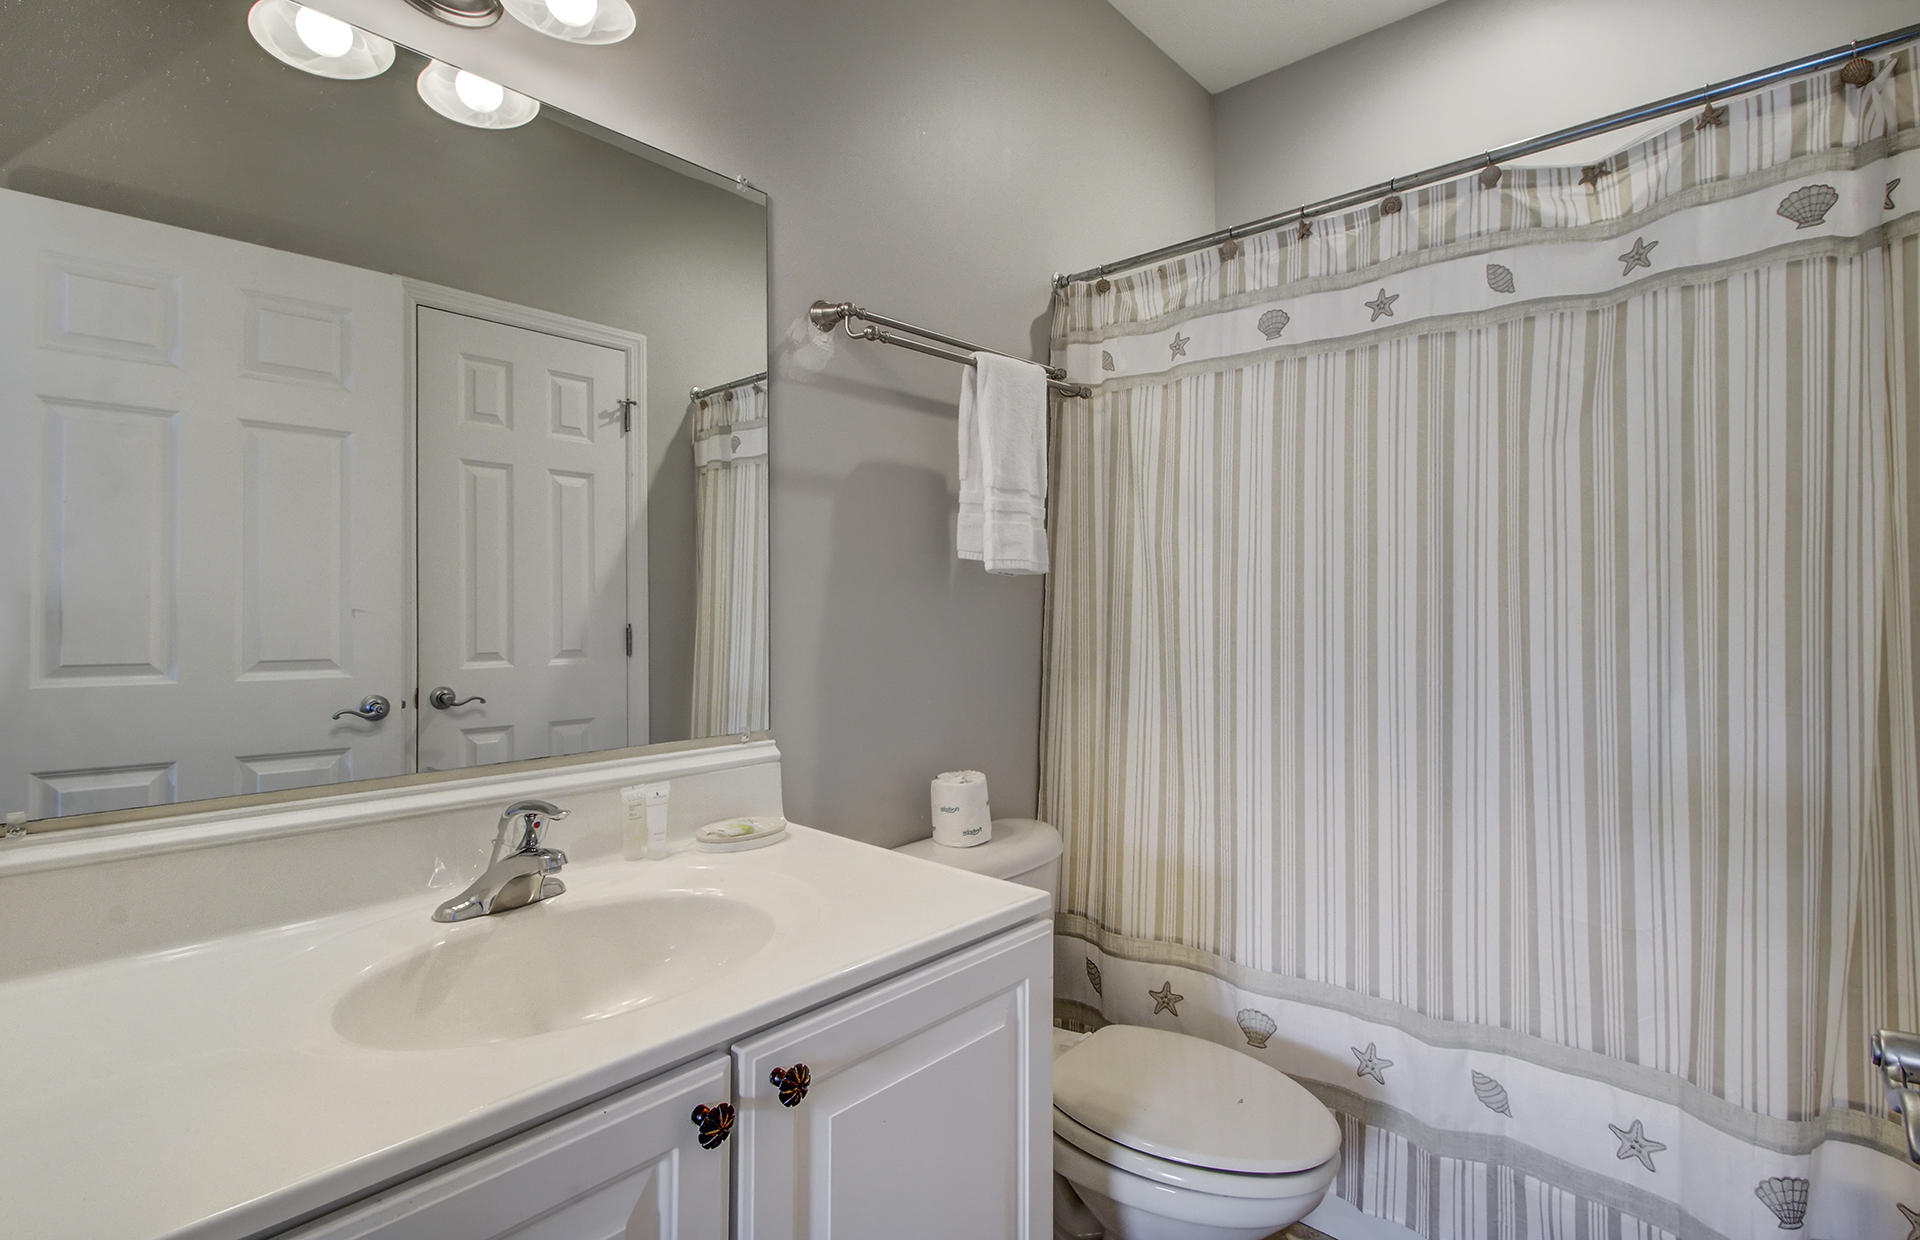 Waters Edge Homes For Sale - 80 2nd, Folly Beach, SC - 57